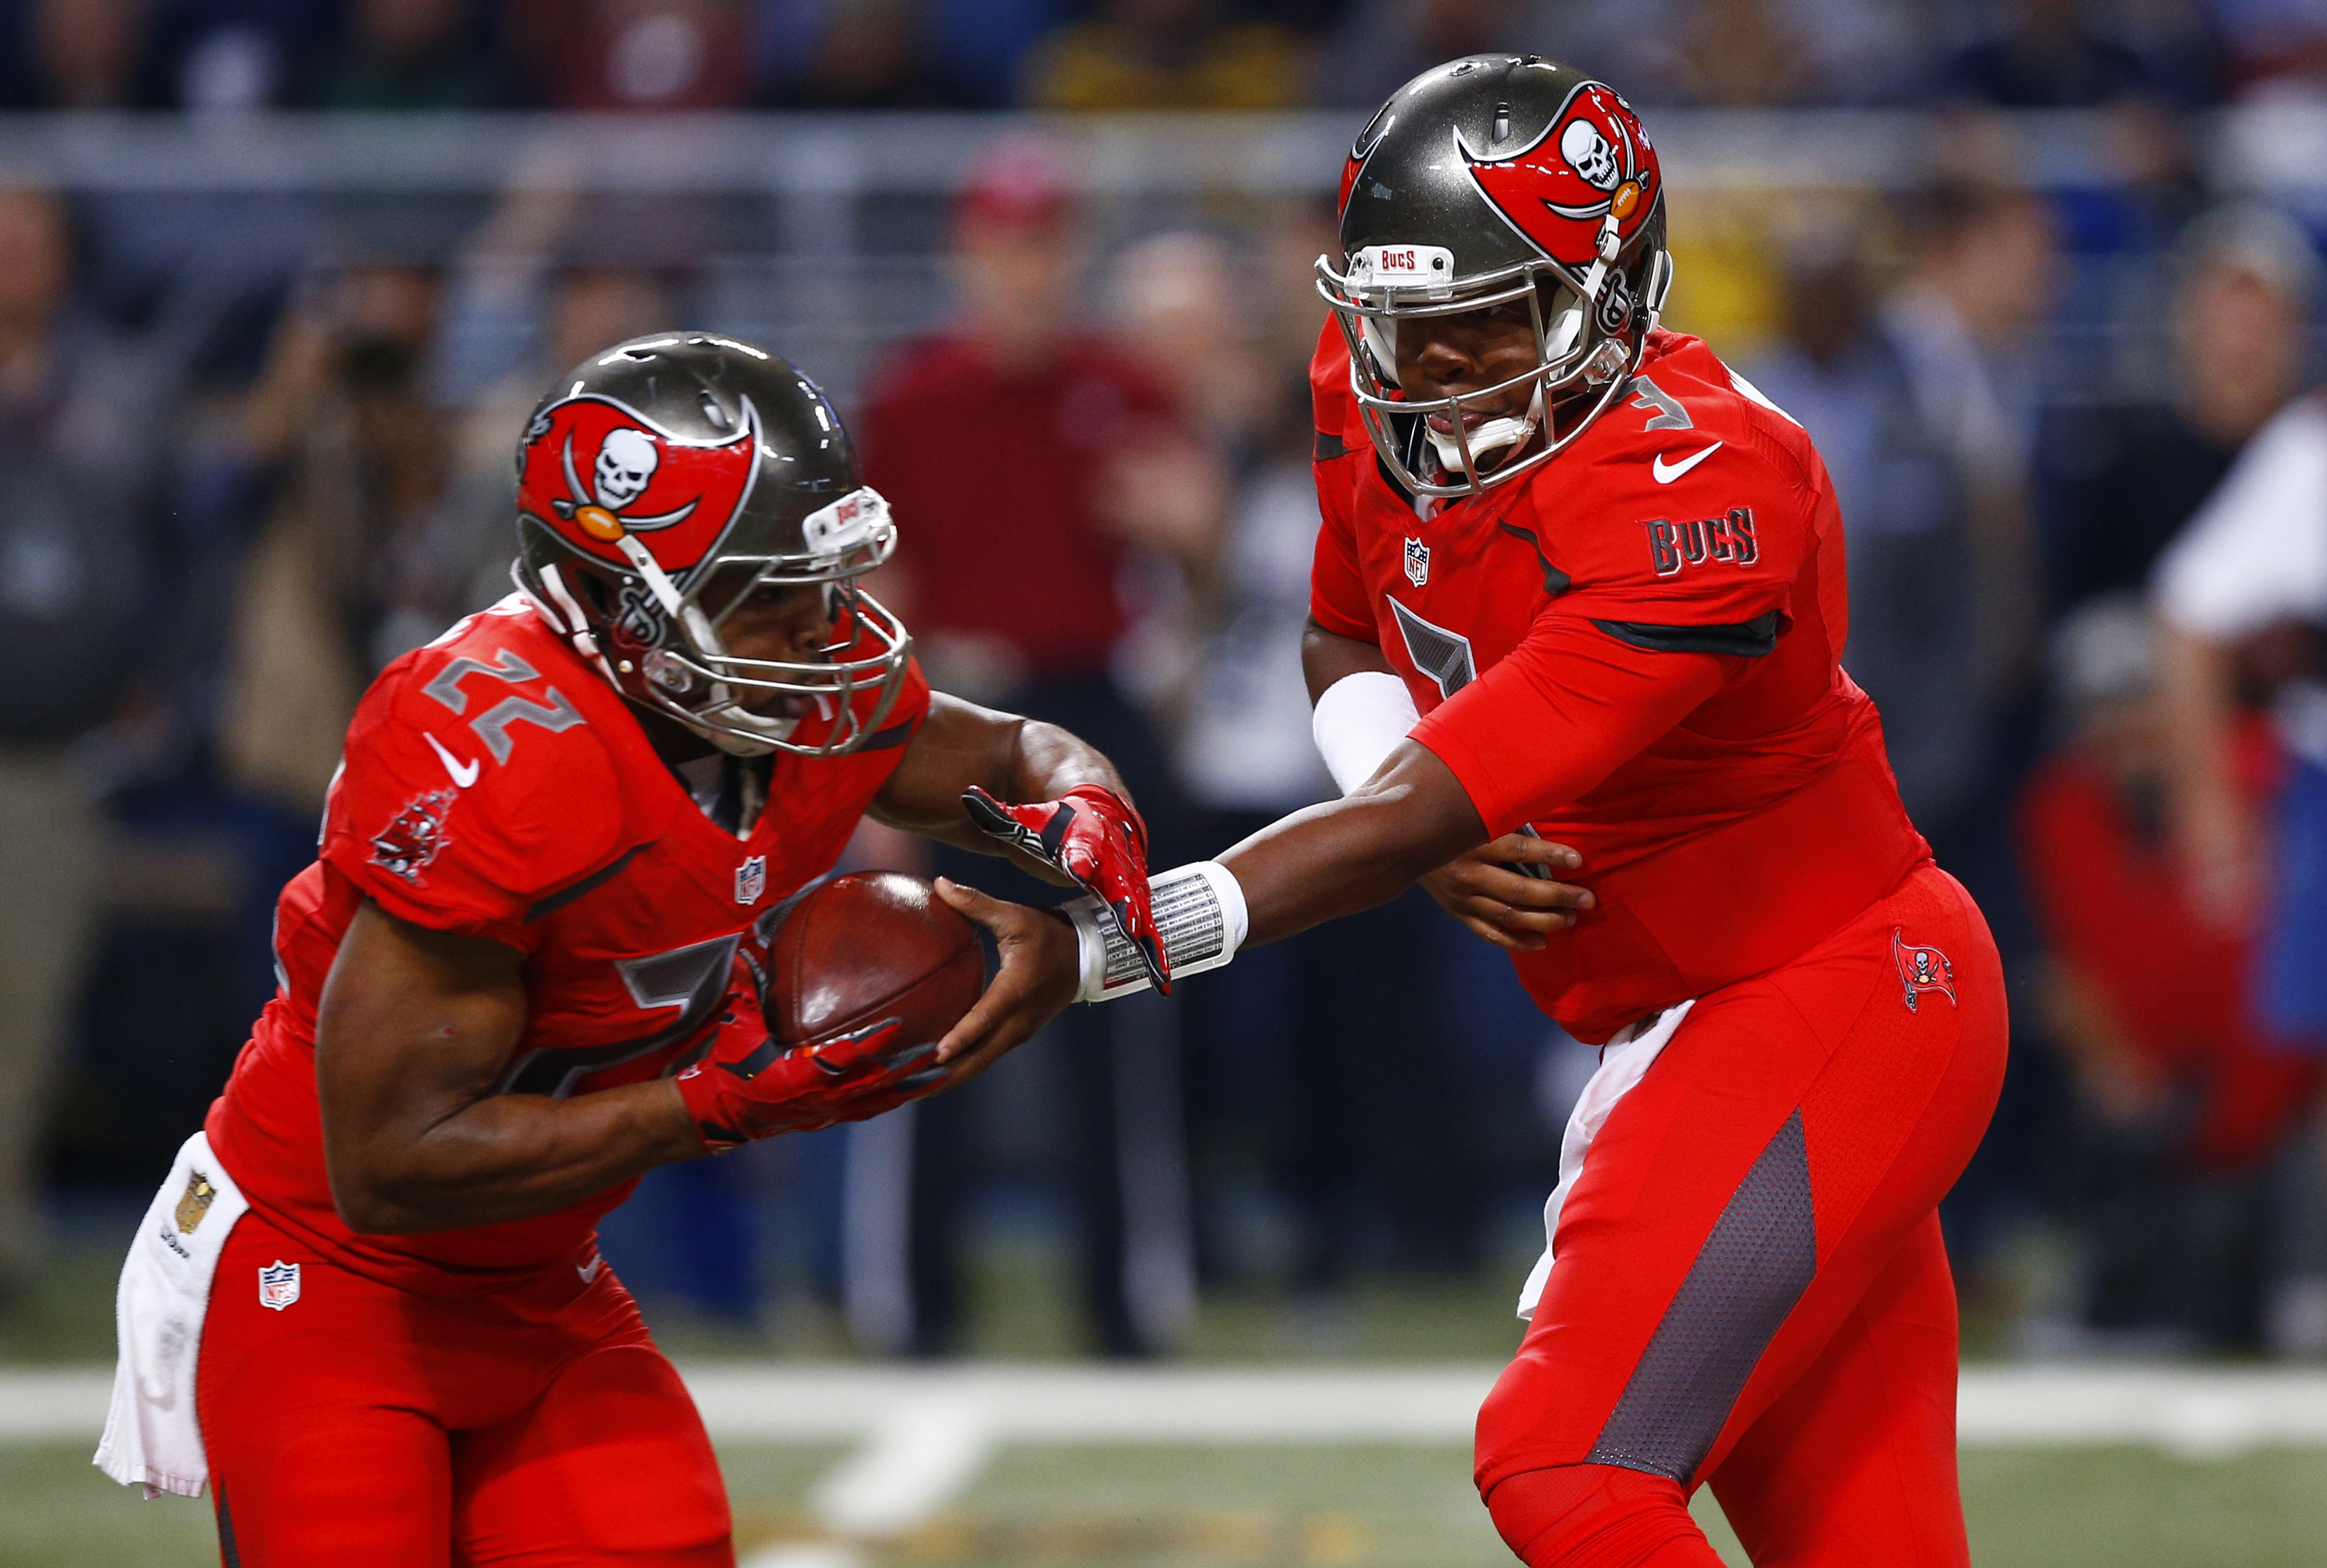 FILE - In this Dec. 17, 2015, file photo, Tampa Bay Buccaneers quarterback Jameis Winston, right, hands off to running back Doug Martin during the first quarter of an NFL football game against the St. Louis Rams in St. Louis. Winston has to play better fo